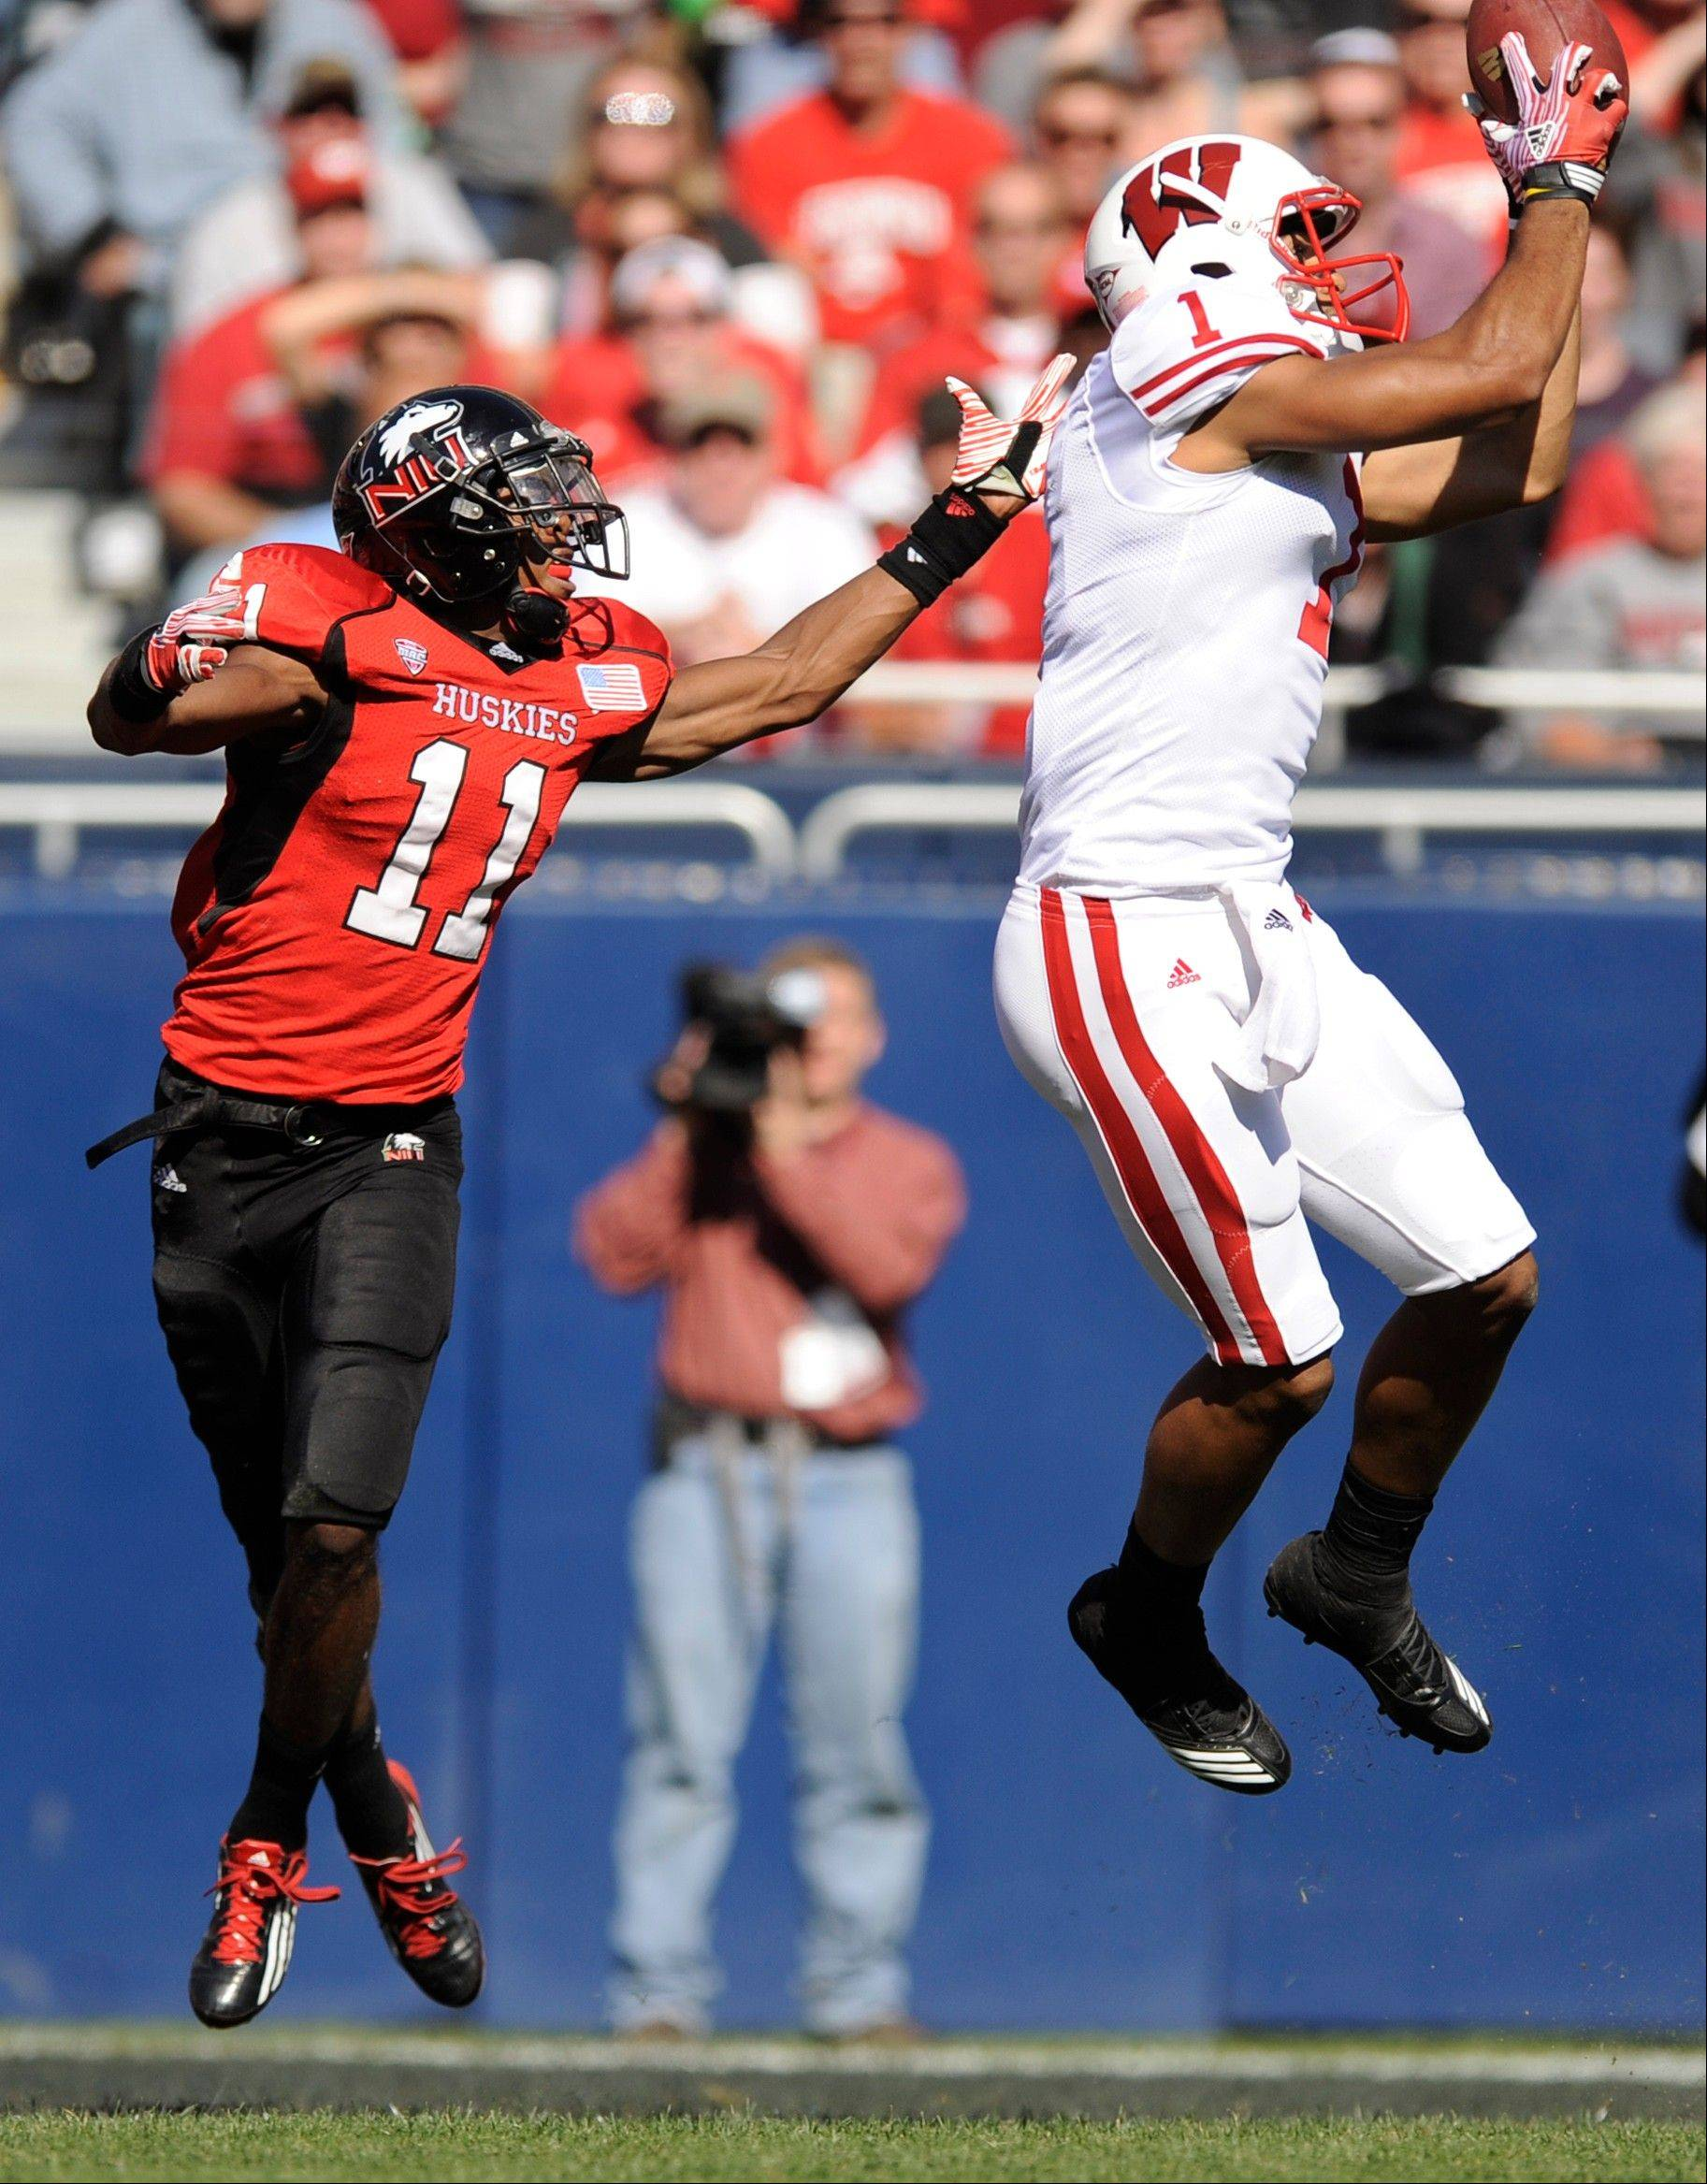 Wisconsin wide receiver Nick Toon, right, catches a touchdown pass in front of Northern Illinois' Rashann Melvin in Chicago, Saturday, Sept. 17, 2011. Wisconsin won 49-7. Melvin, a Waukegan grad, is listed on the 2012 NIU roster as a Cornerback.